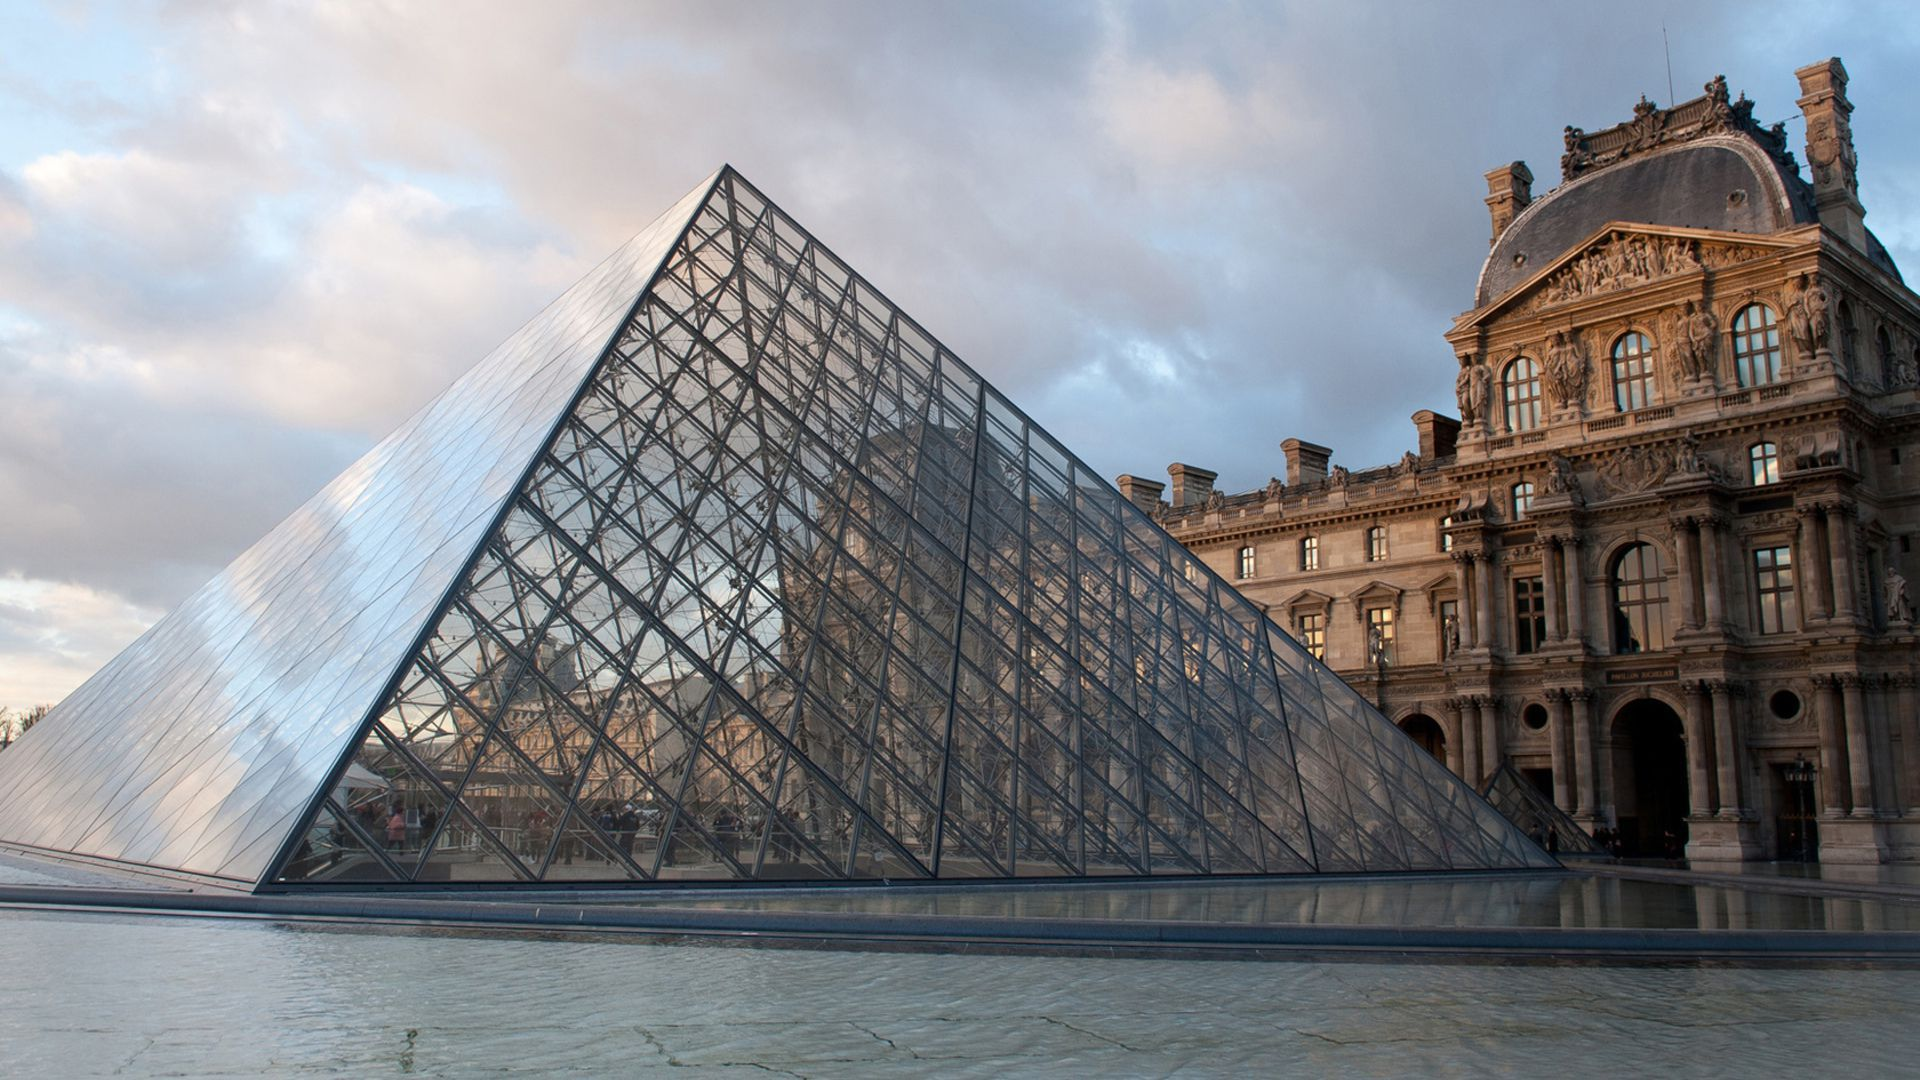 The louvre wallpapers backgrounds - Louvre architekt ...